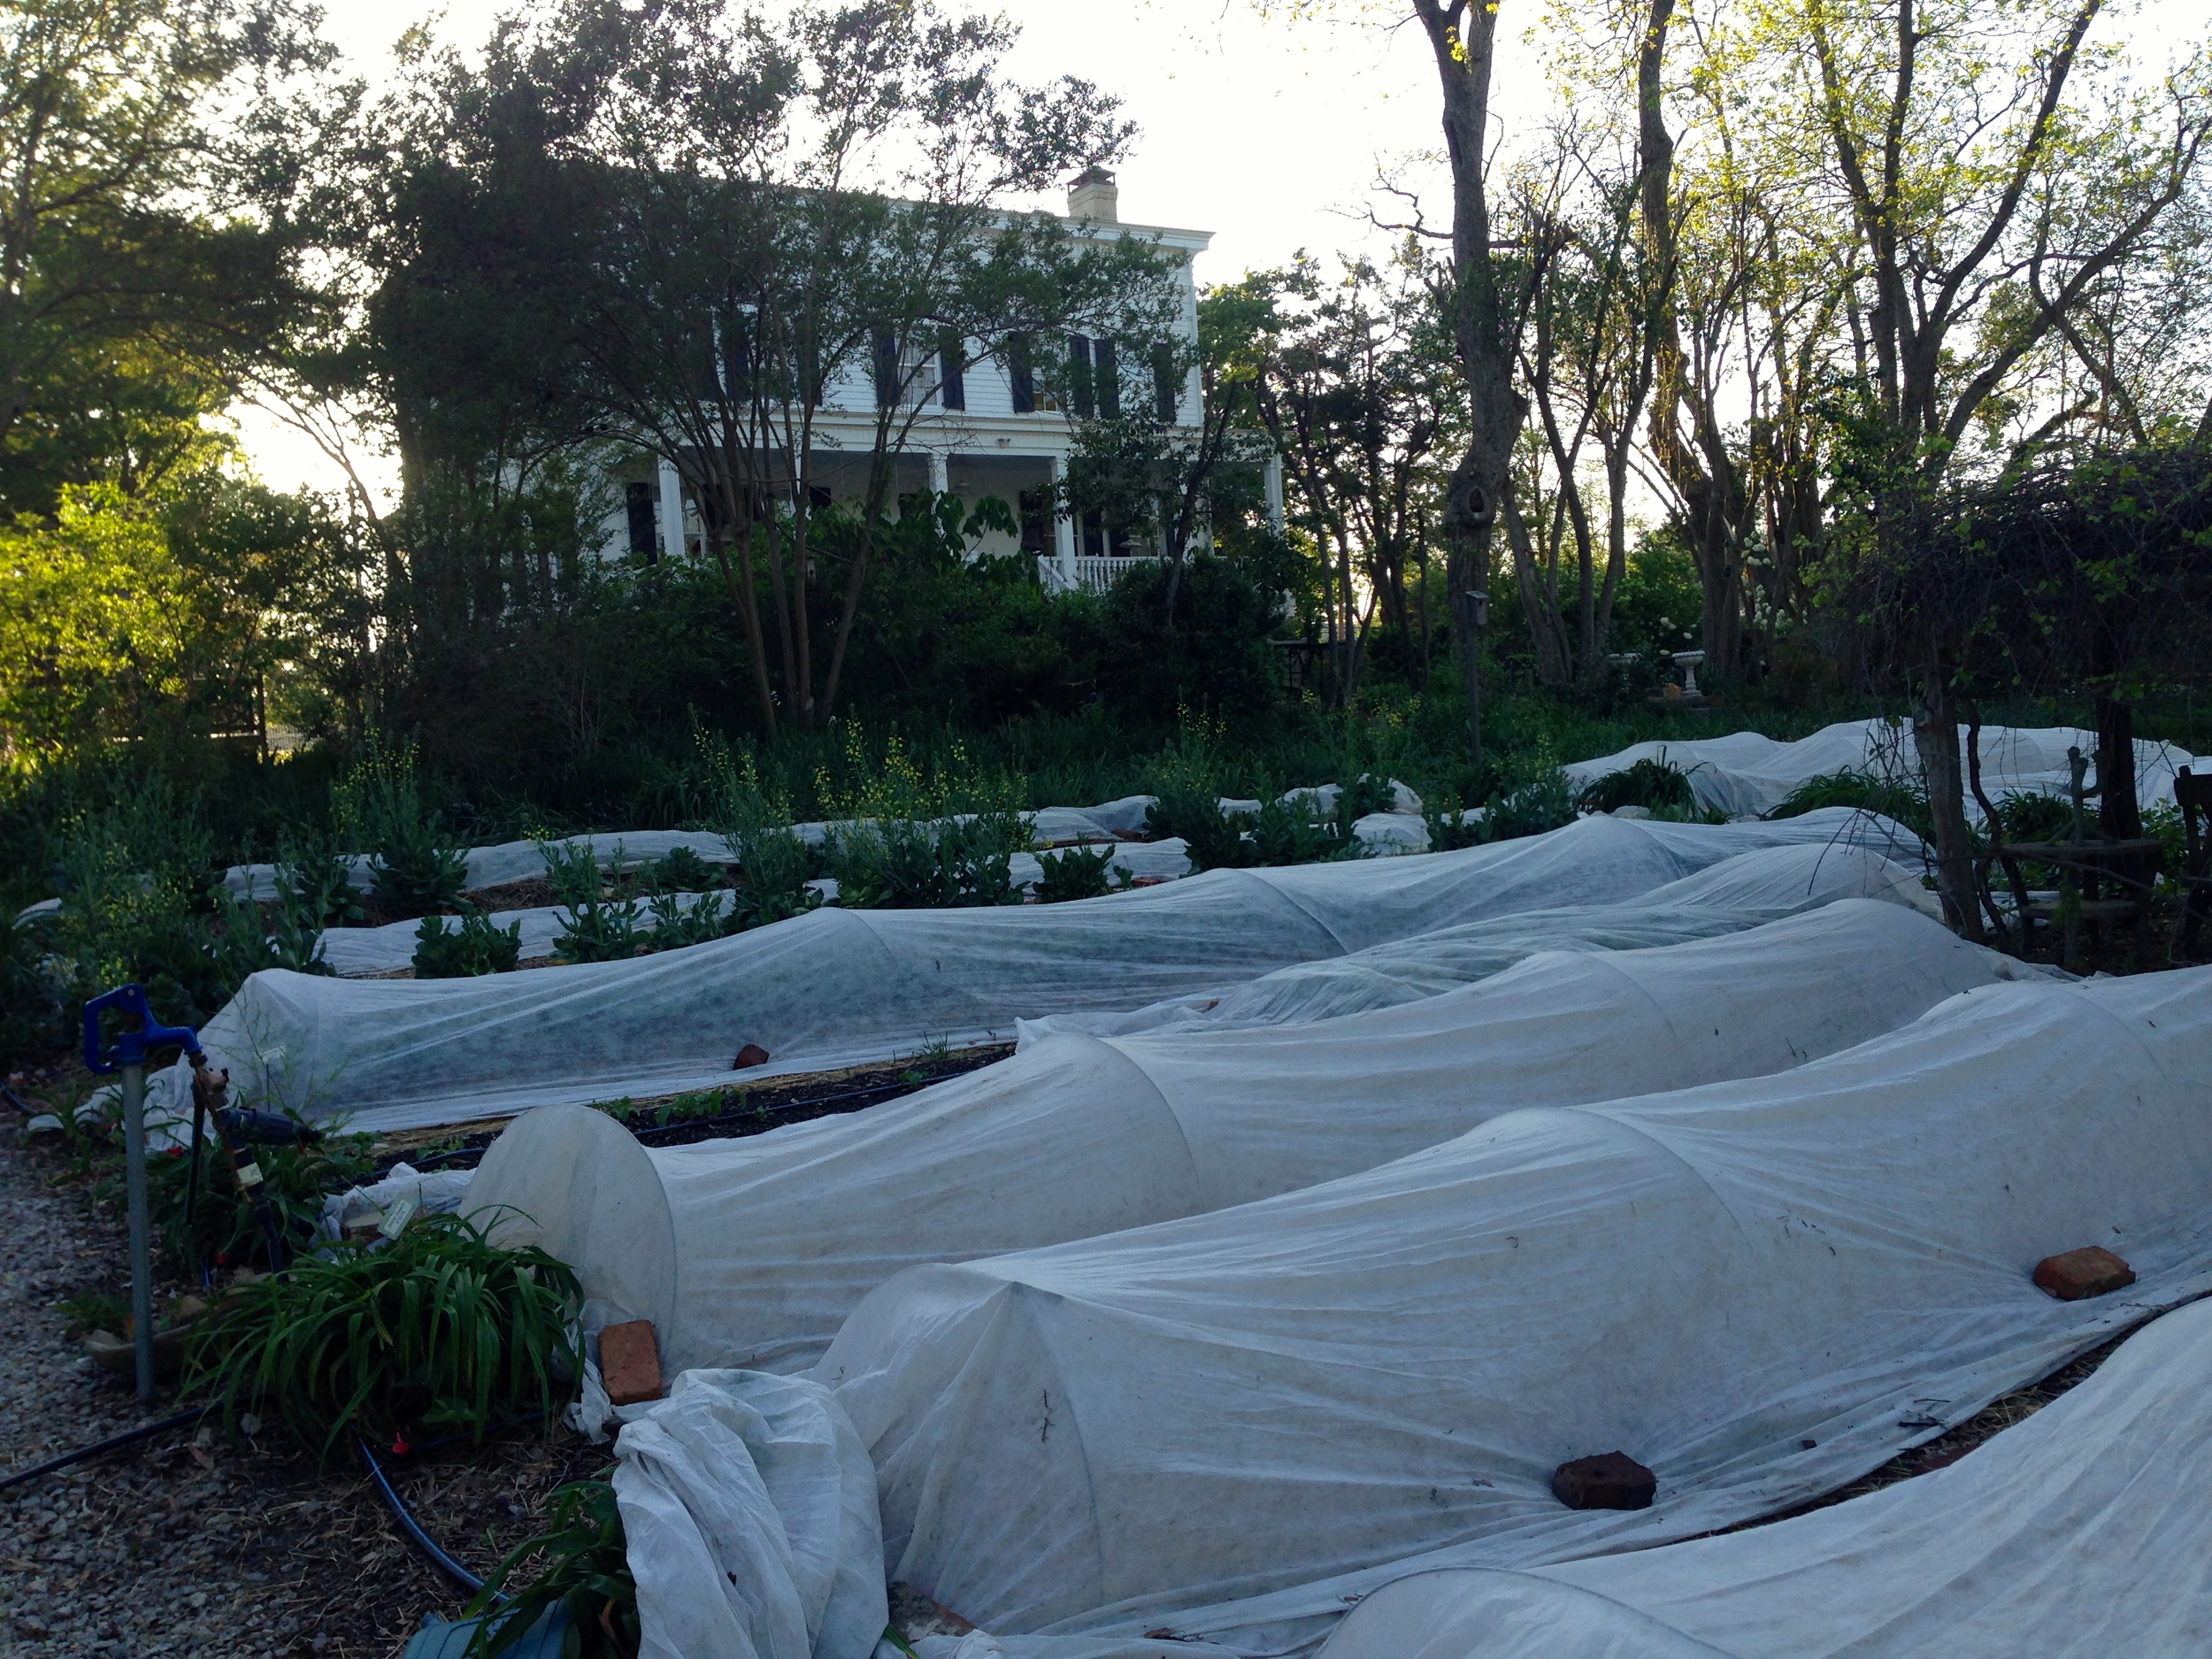 Strong winds attempt to lift the row covers, but they are secure!